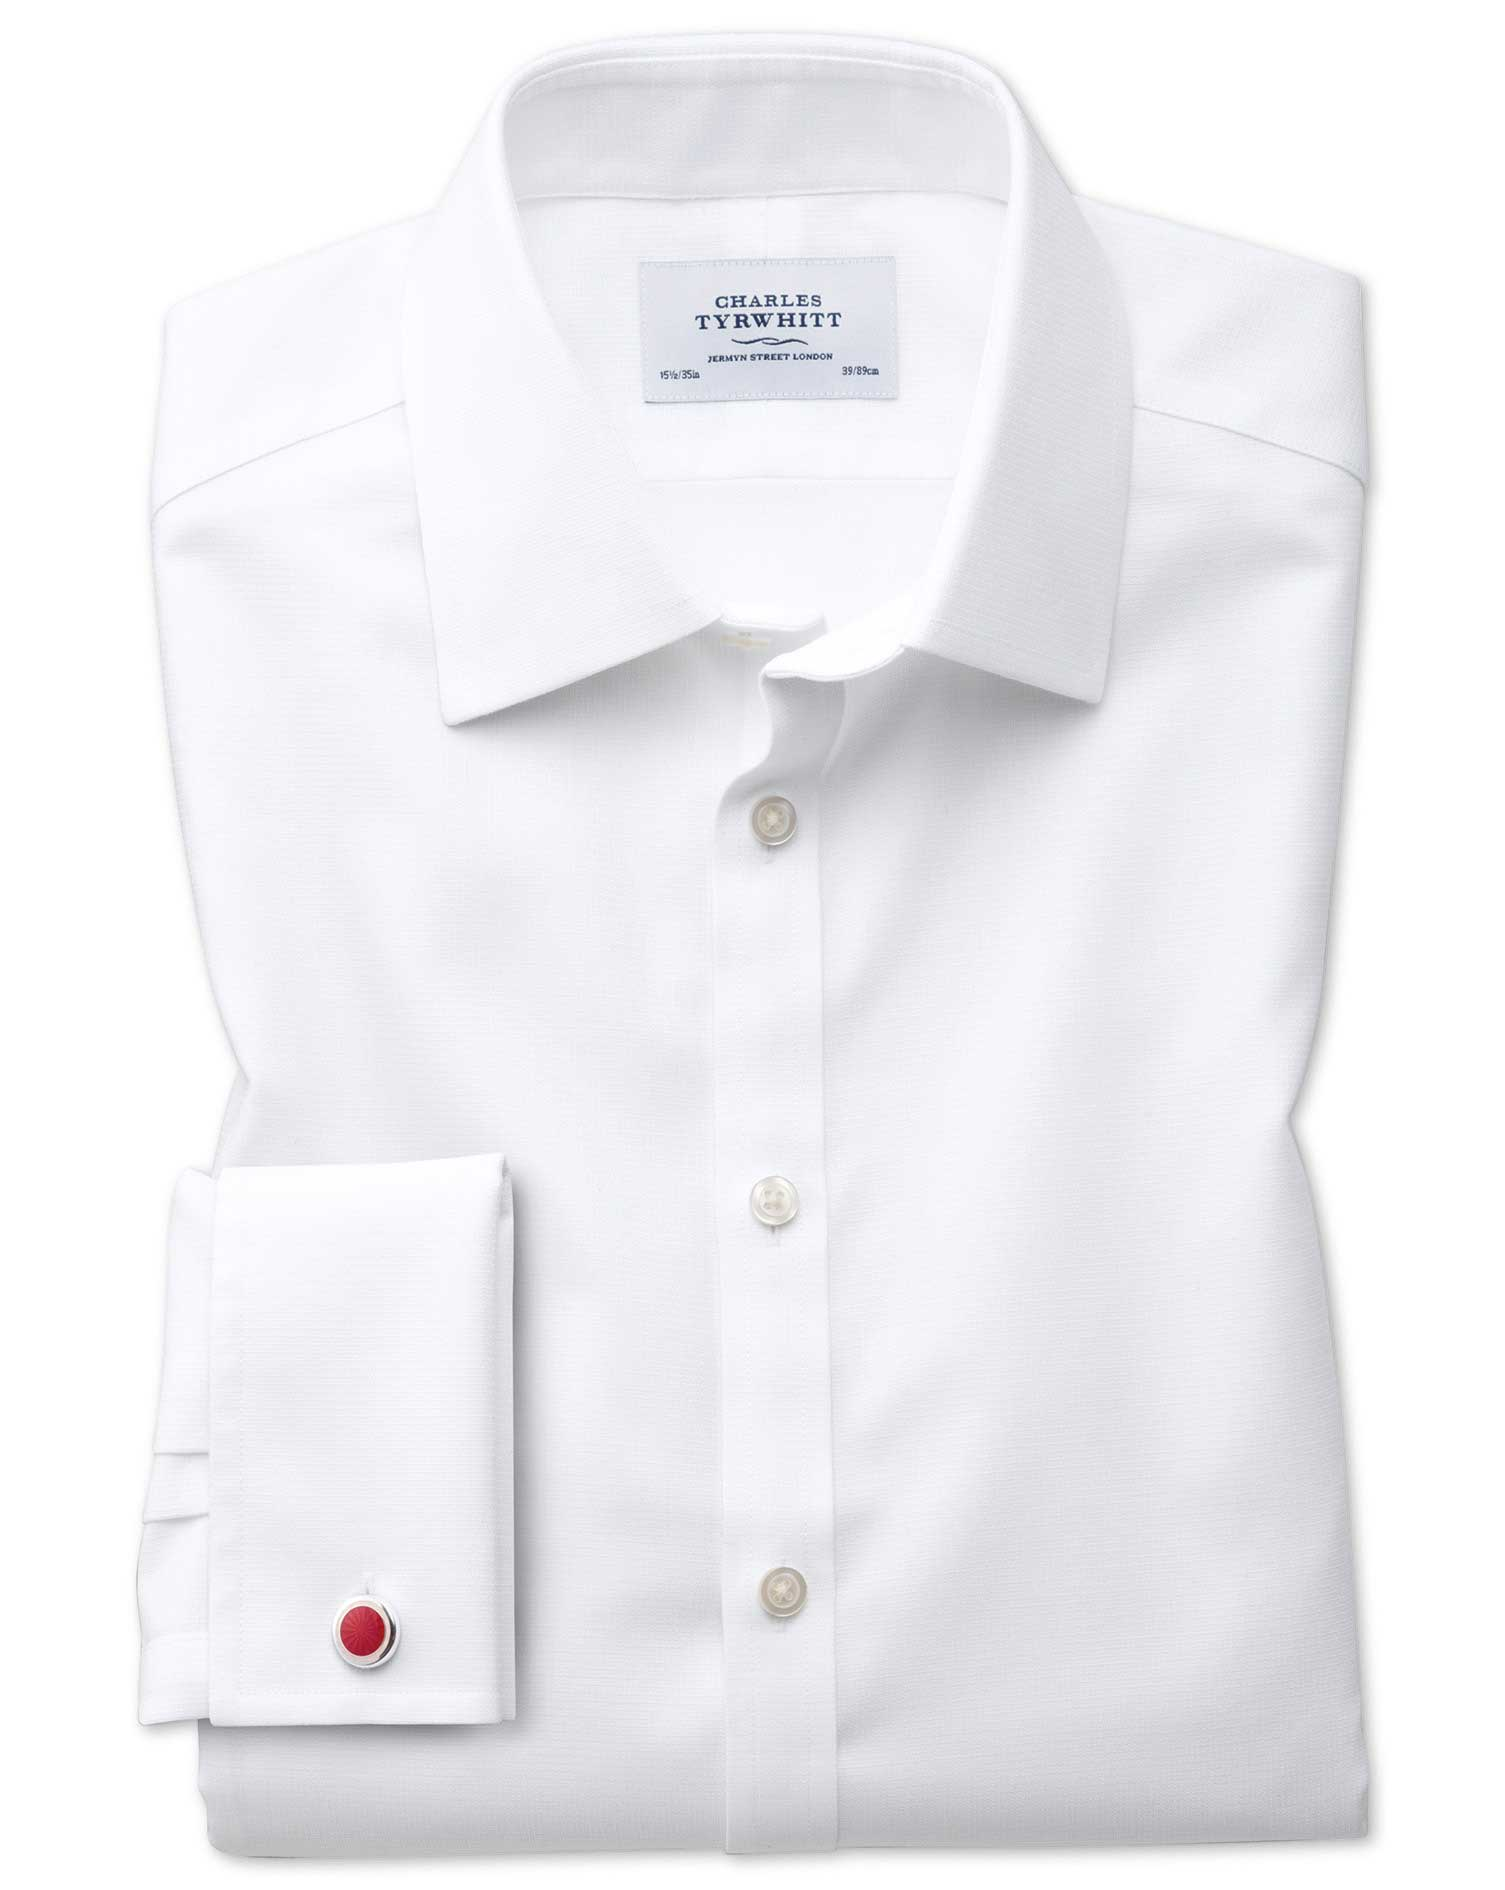 Classic Fit Non-Iron Square Weave White Cotton Formal Shirt Double Cuff Size 16/36 by Charles Tyrwhi